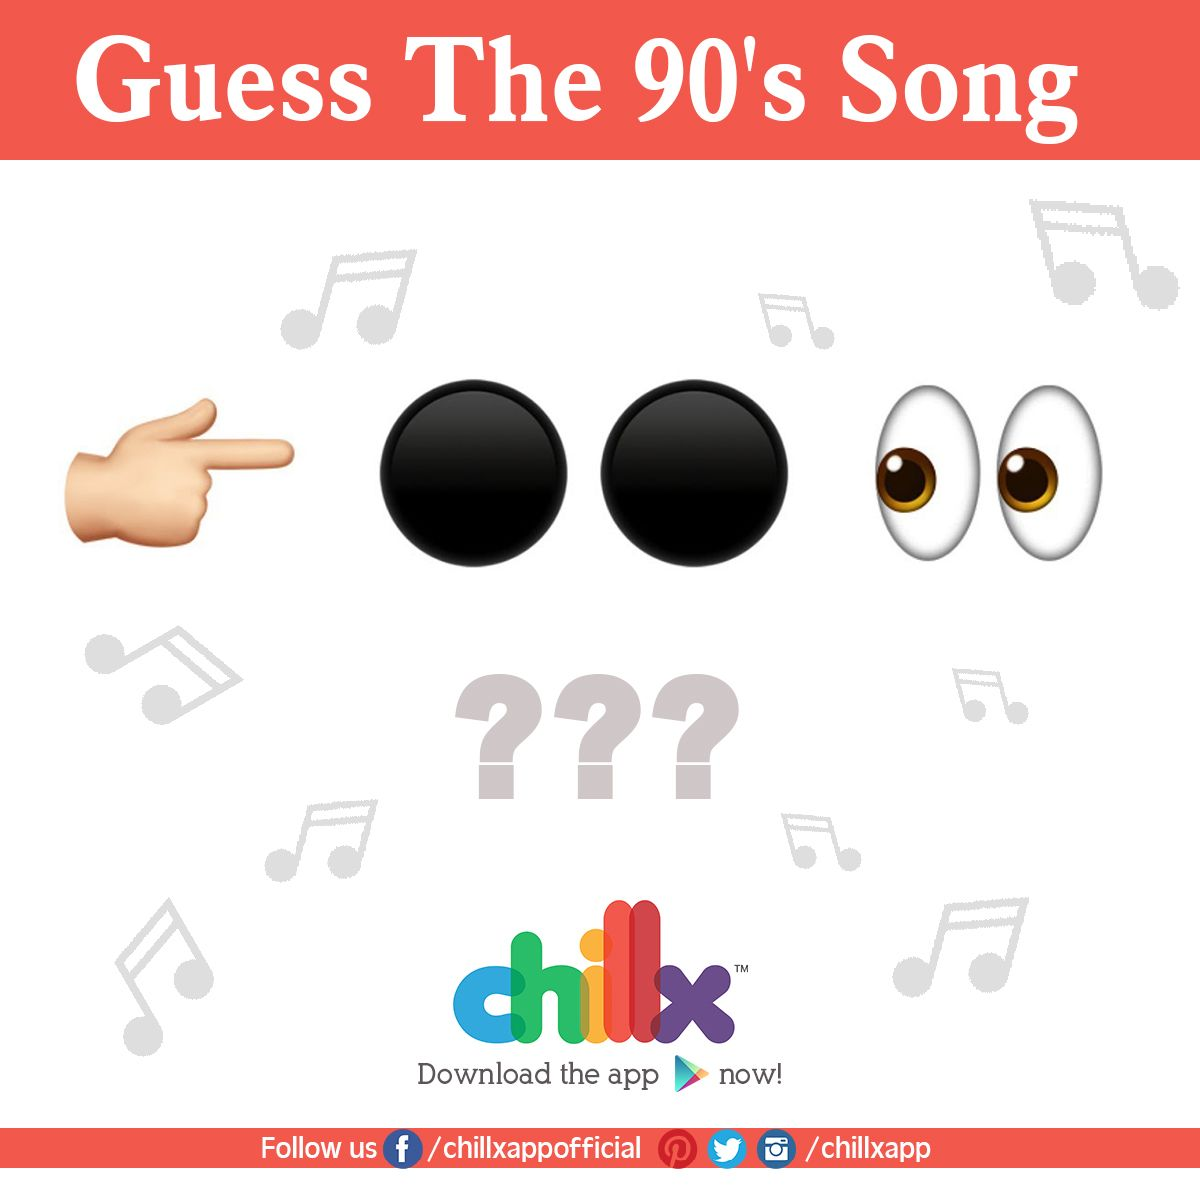 Emojipuzzle Bollywood Songs 90s Songs Emoji Challenge Guess new hindi movie song names from emoticons and smileys well, here you can find 50+ quiz and puzzles with answers that you can use on whatsapp. bollywood songs 90s songs emoji challenge